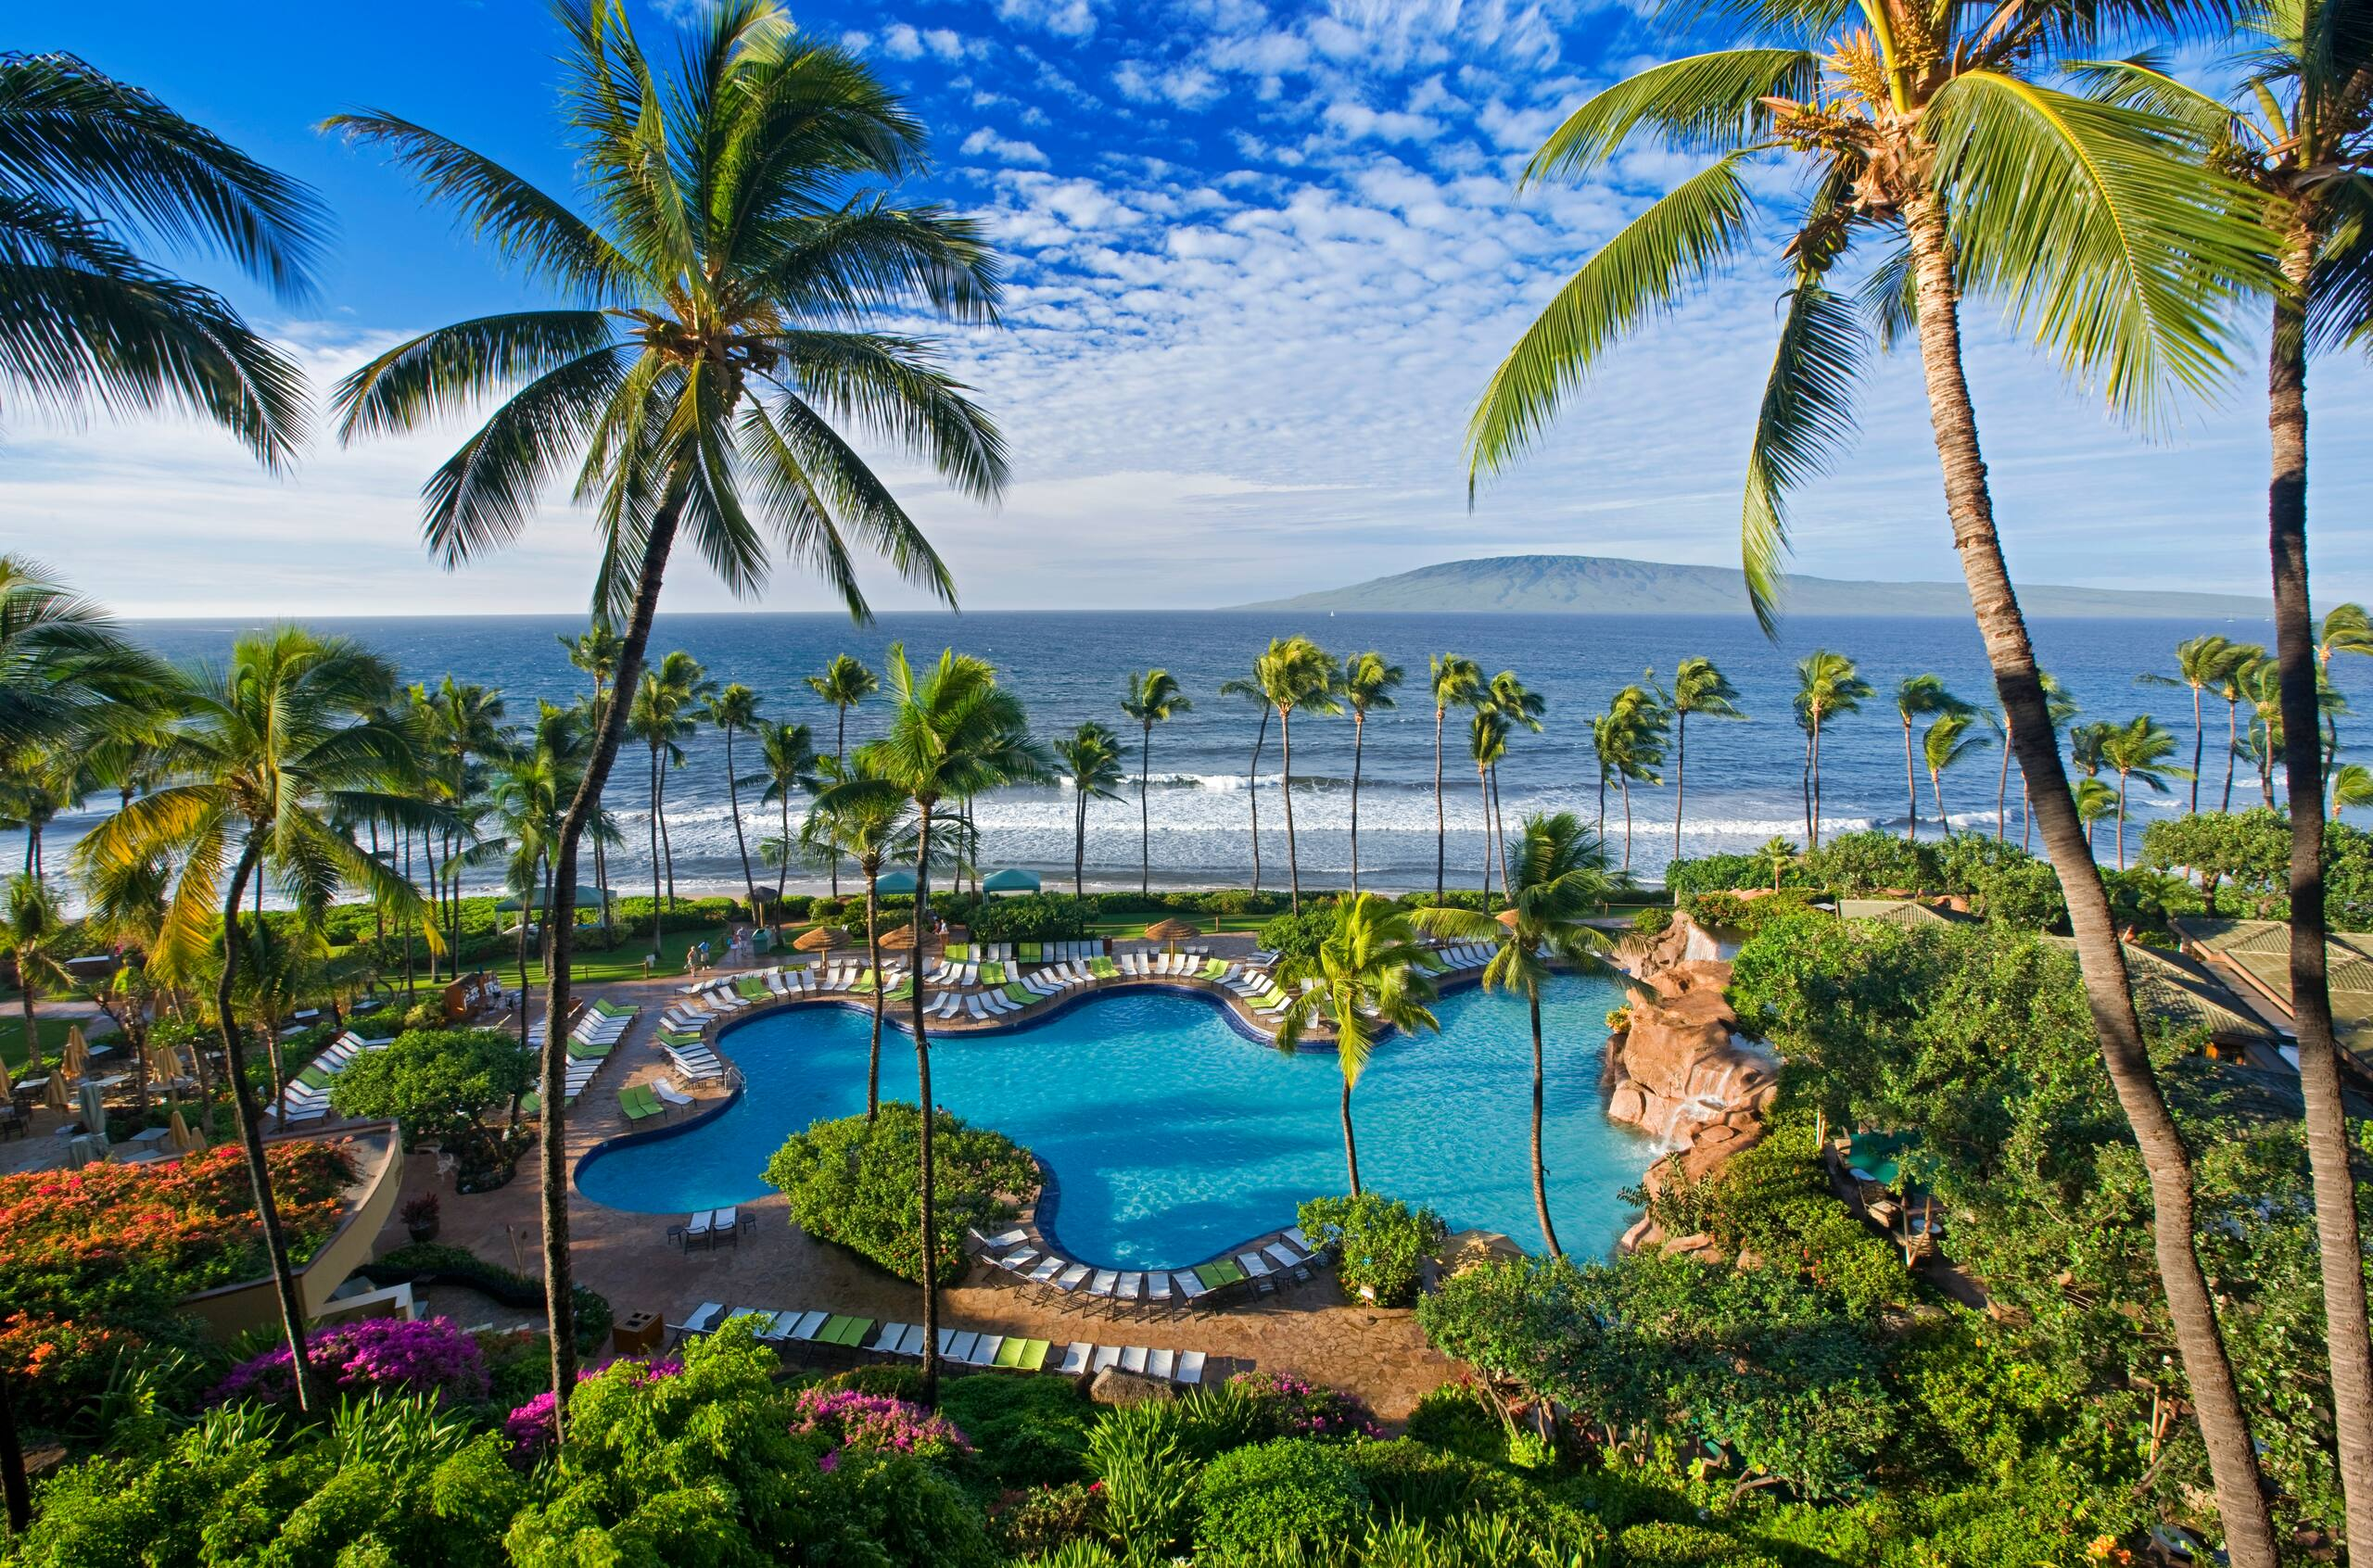 8 Best Hotels In Maui, Hawaii On The Beach